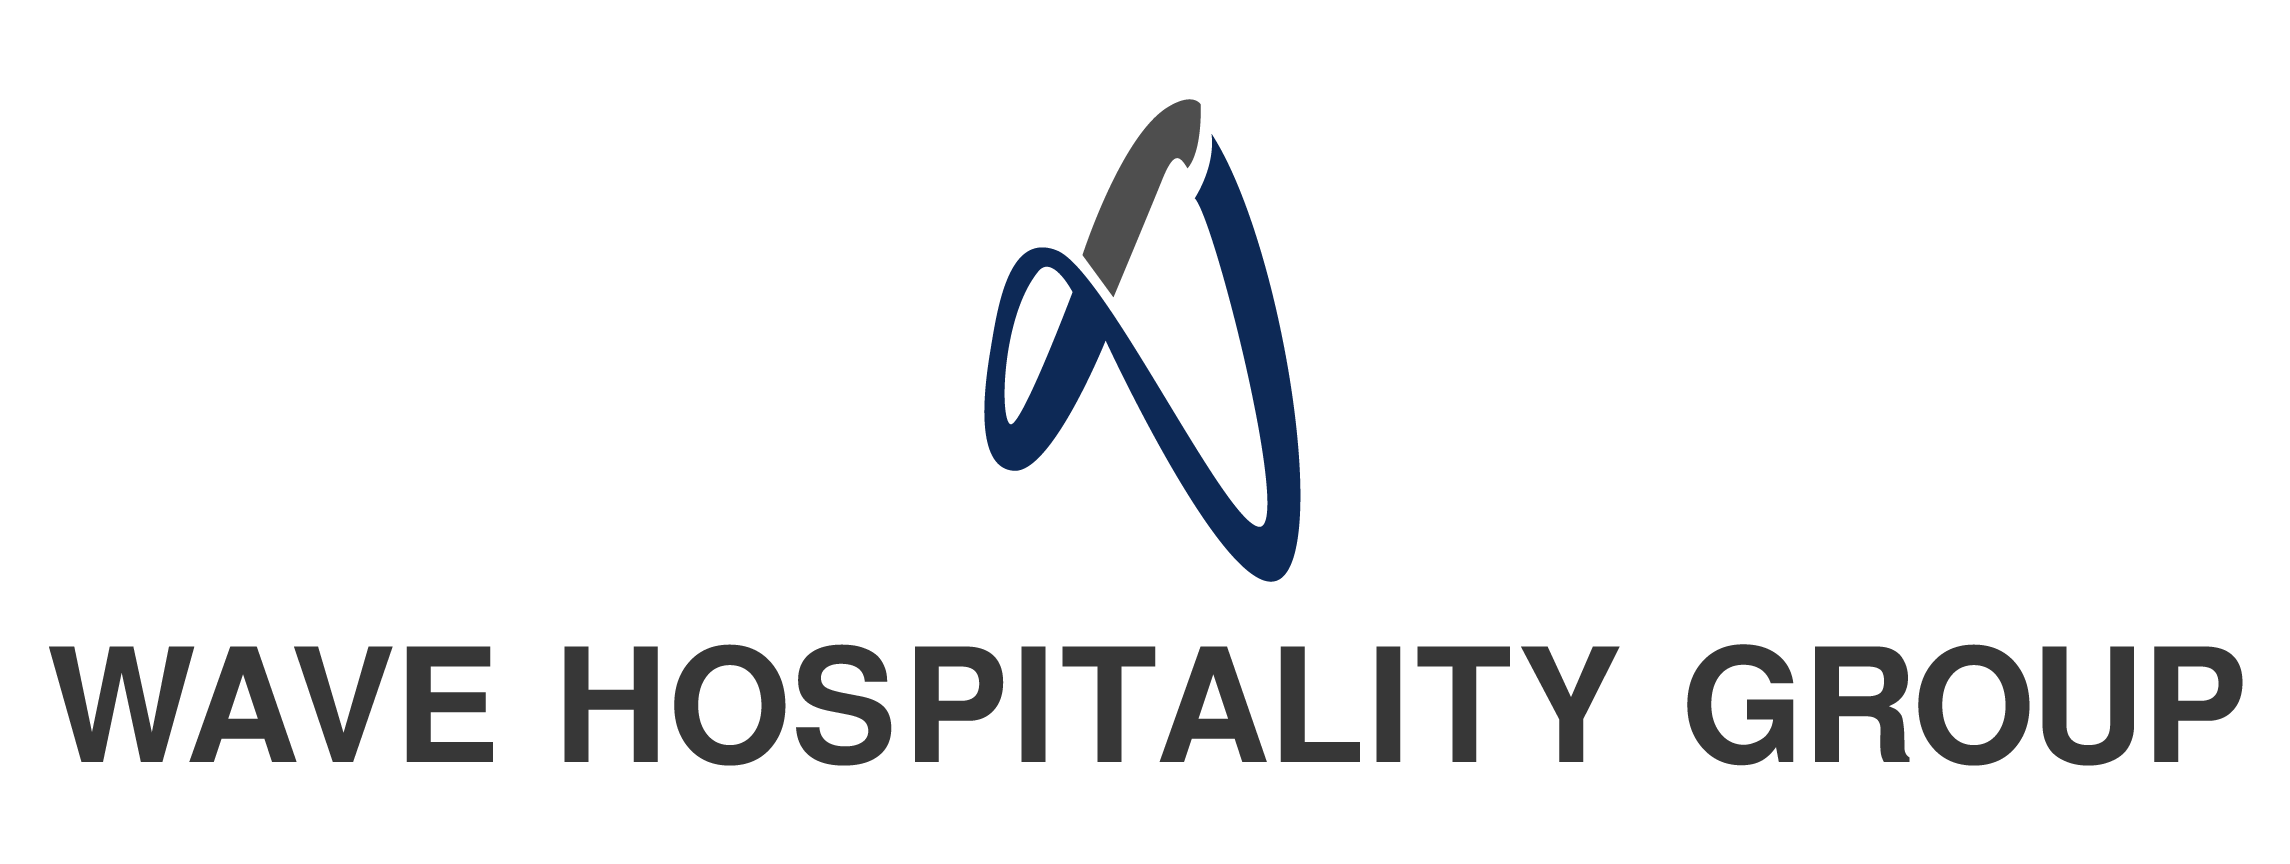 Wave Hospitality Group